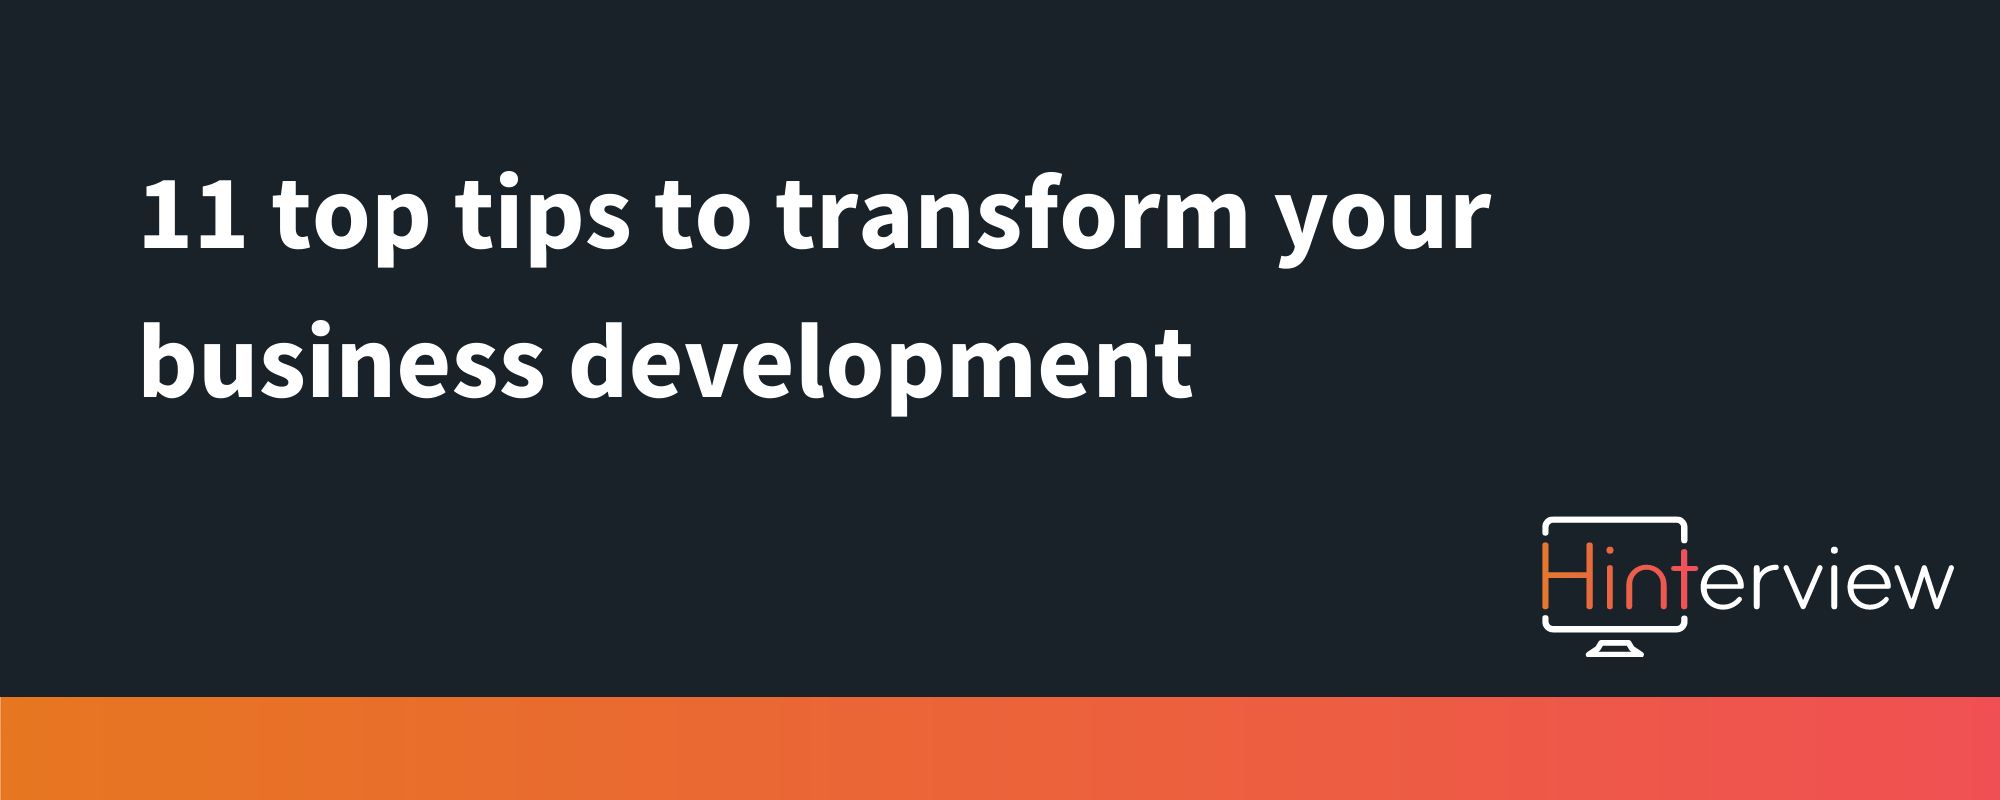 11 top tip to transform your business development with video